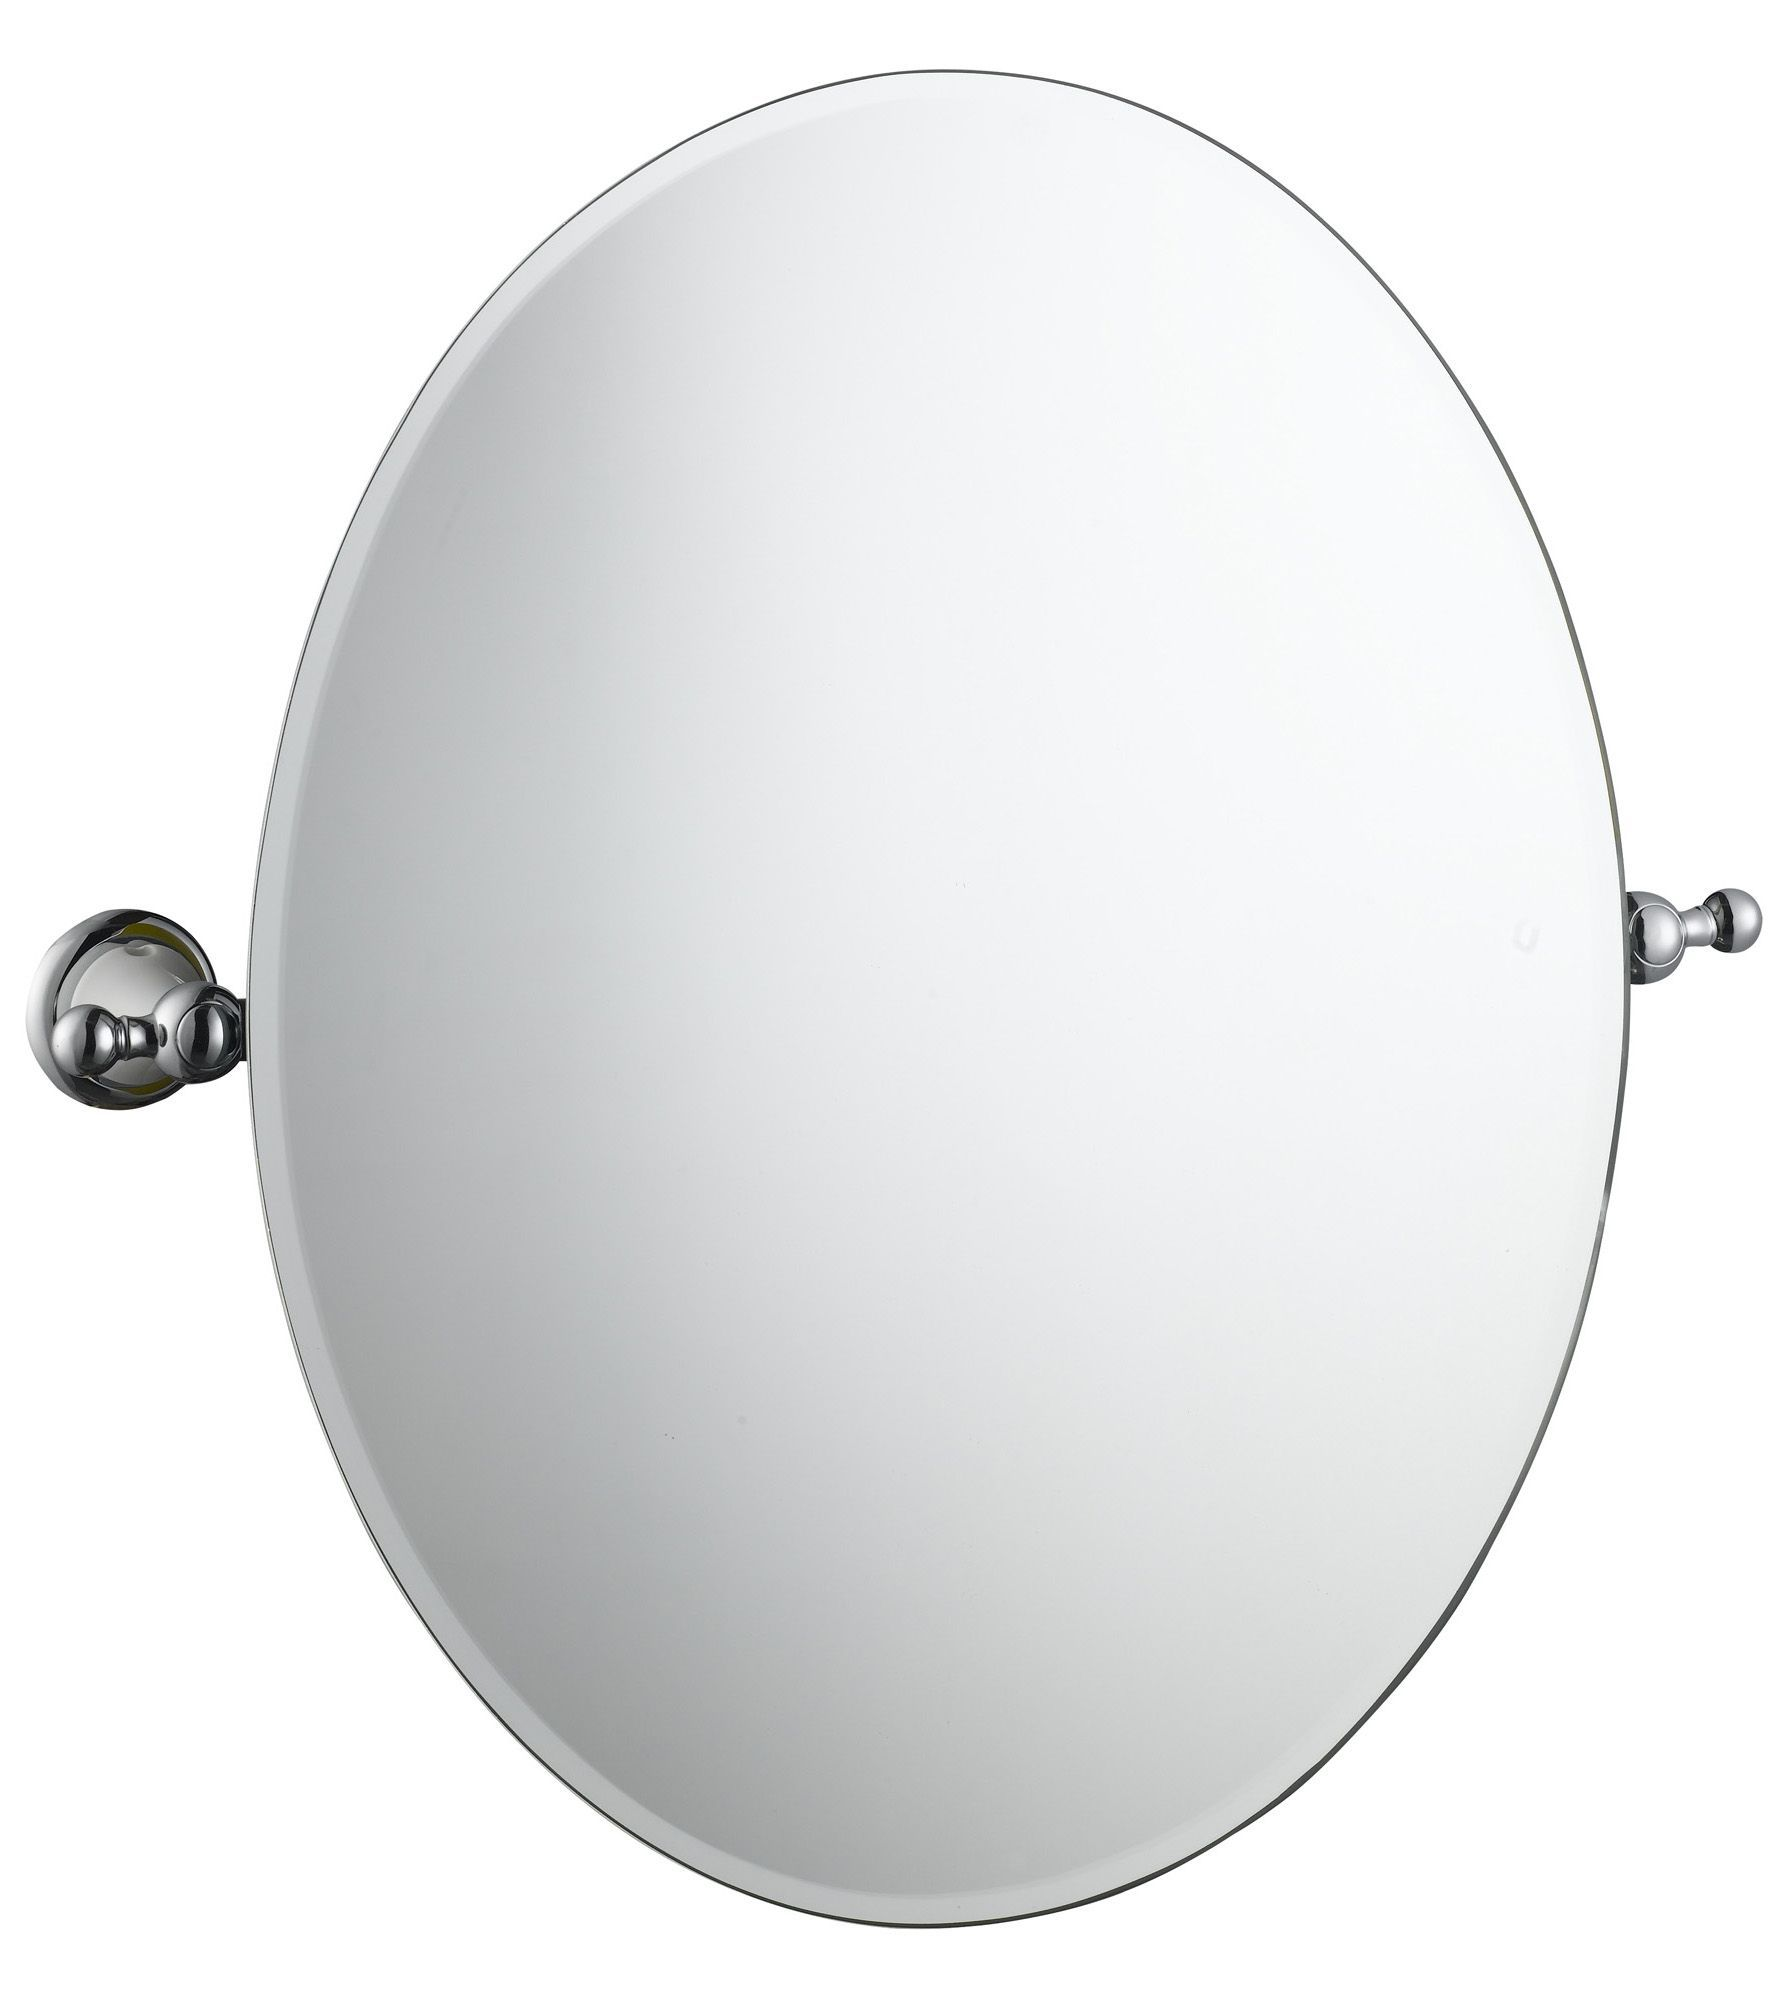 Cooke Amp Lewis Timeless Oval Wall Mirror W 501mm H 500mm Departments Diy At B Amp Q Oval Wall Mirror Mirror Wall Mirror